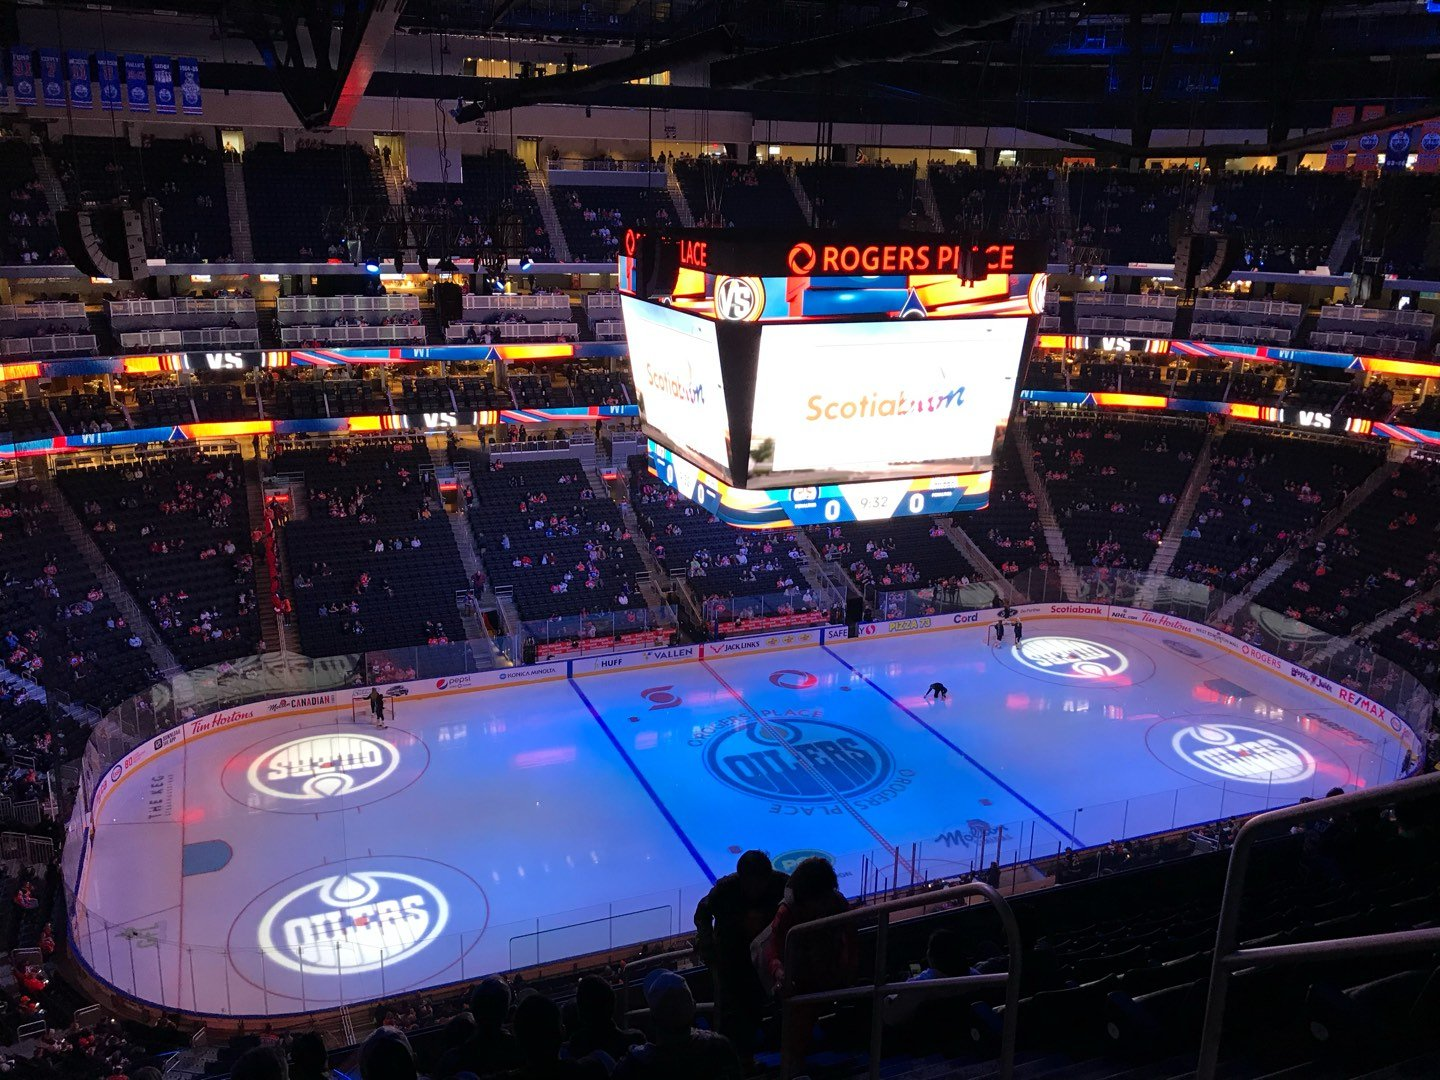 Rogers Place Section 222 Row 10 Seat 4